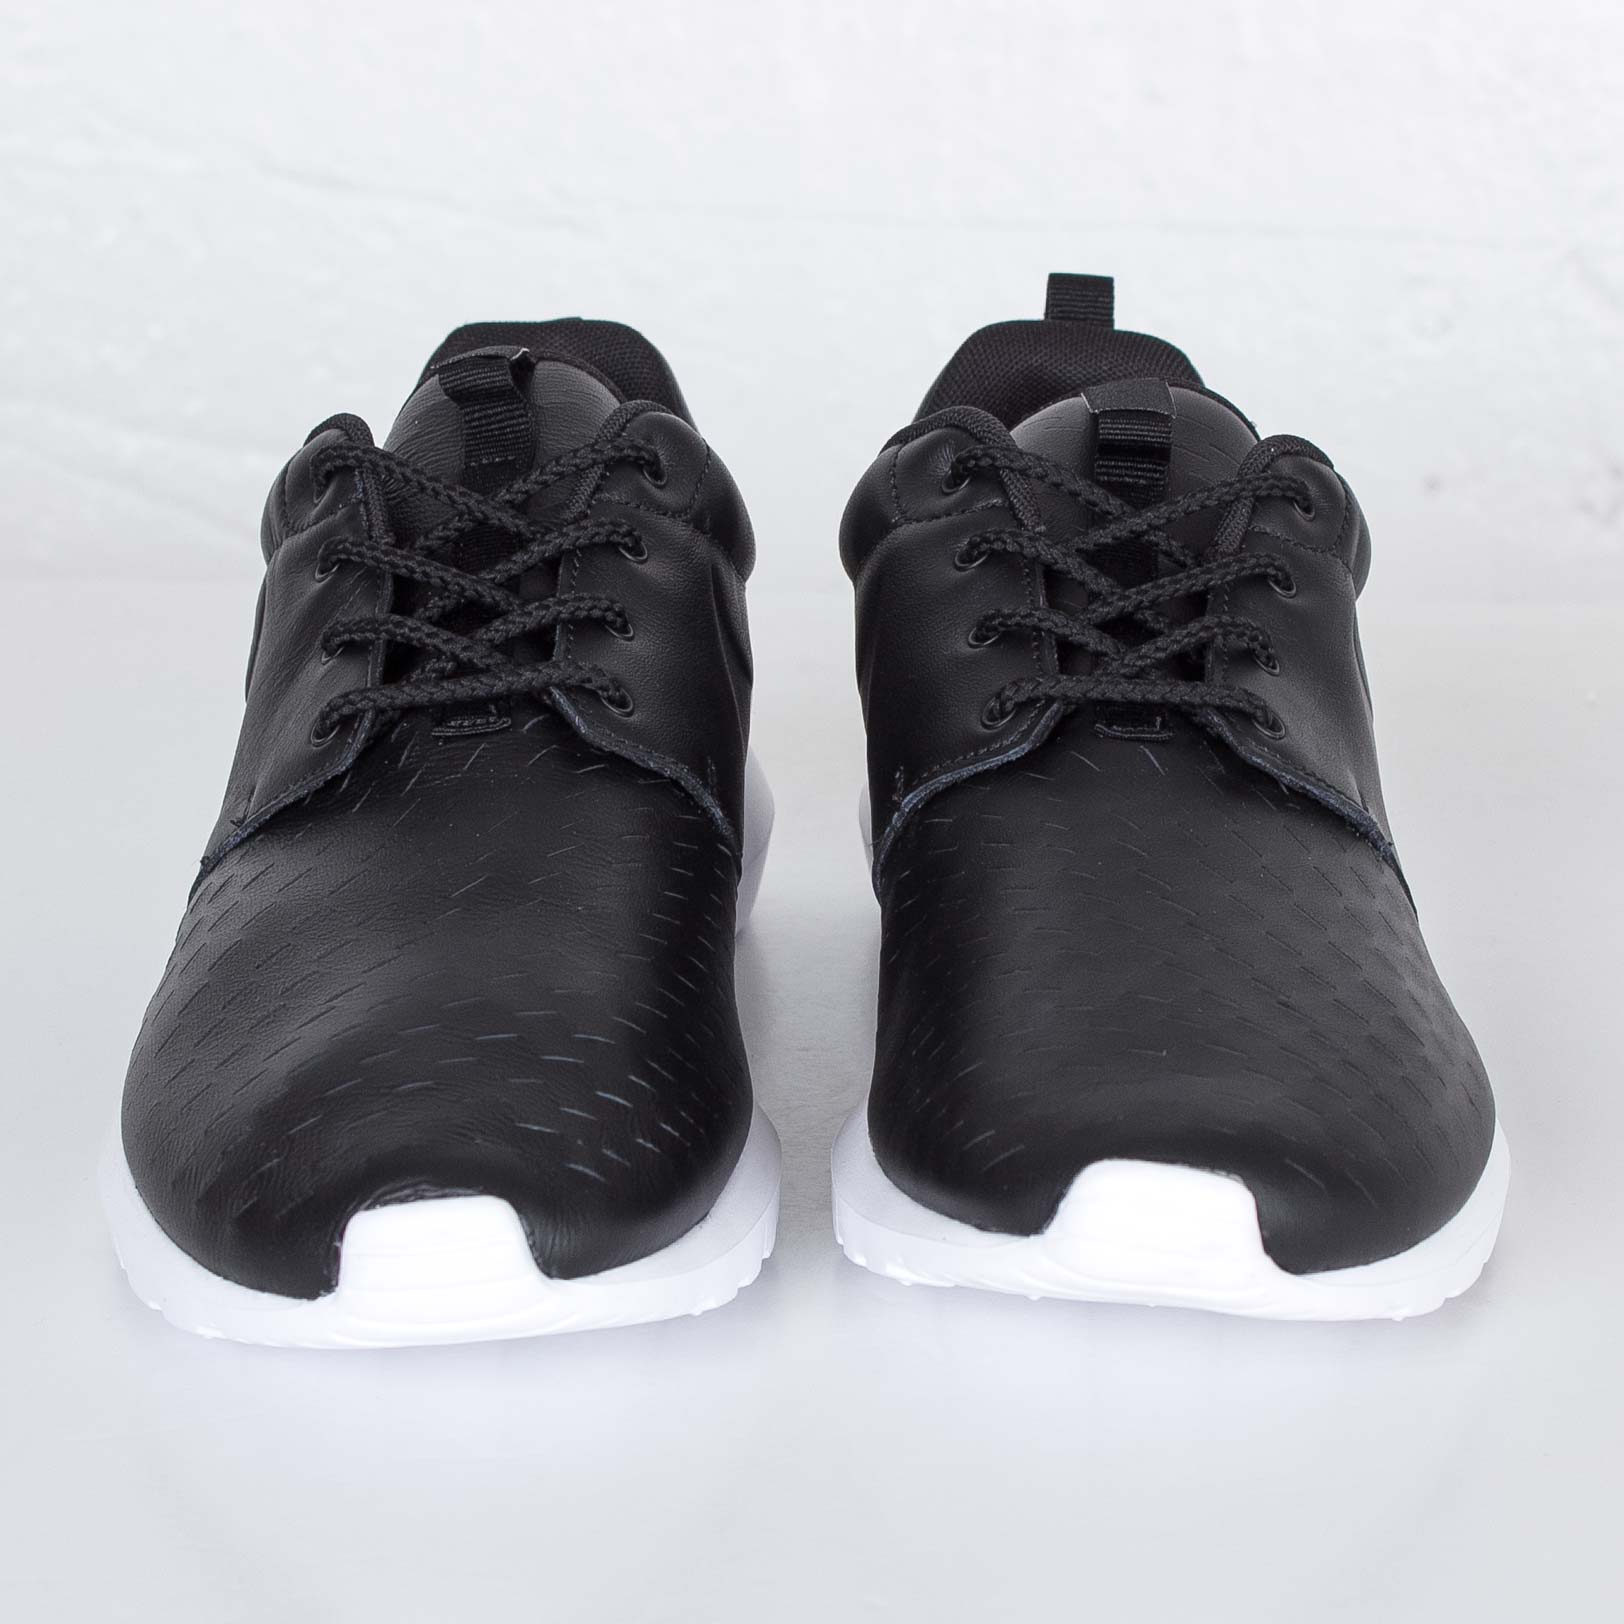 sports shoes 6a730 3226f Nike Roshe NM LSR - 833126-001 - Sneakersnstuff   sneakers   streetwear  online since 1999